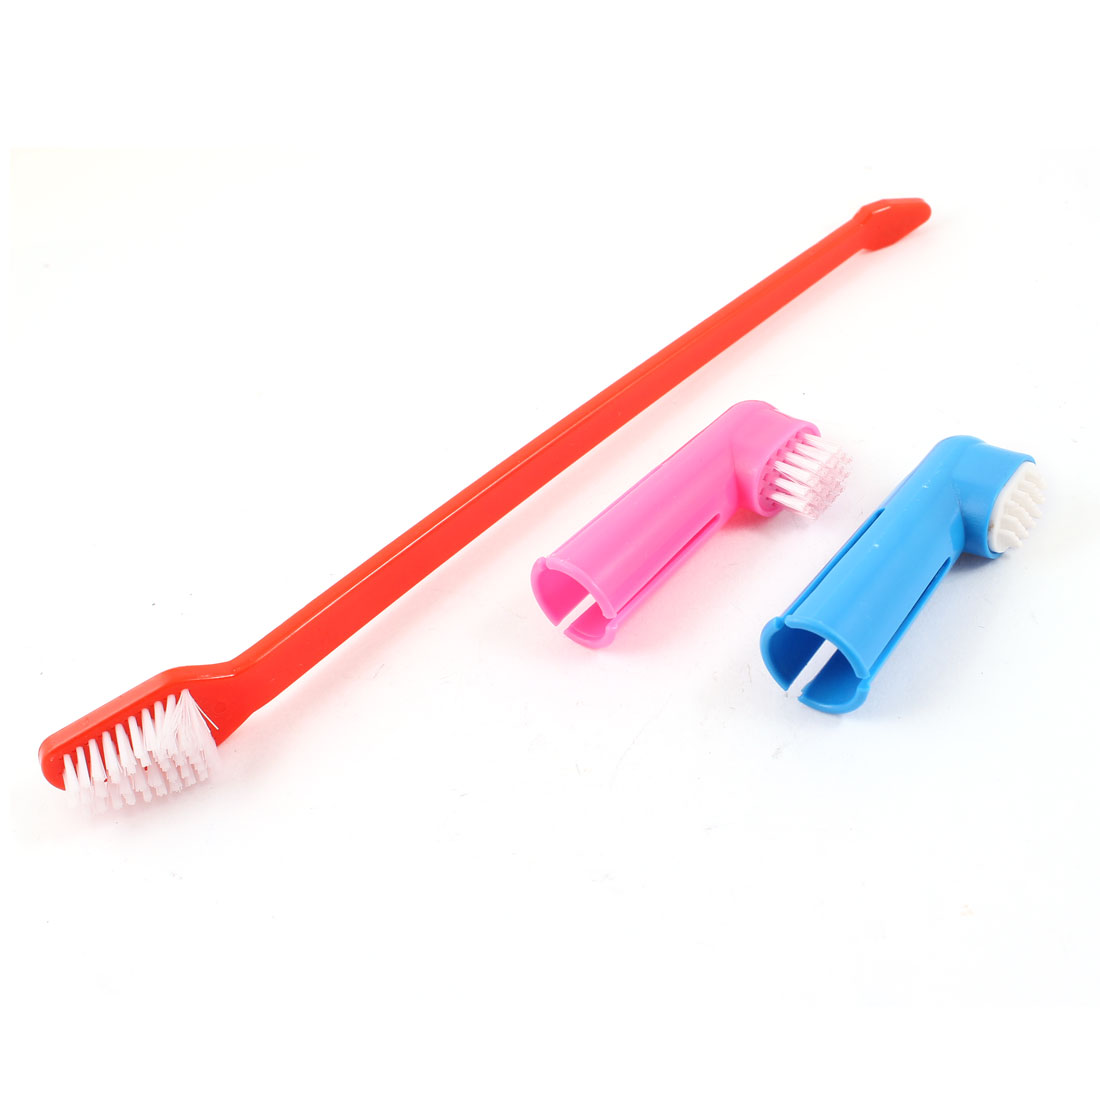 Pet Dog Yorkie Long Handle Dual Headed Tooth Bristle Brush Finger Brushes Red Pink Blue 3 in 1 Set